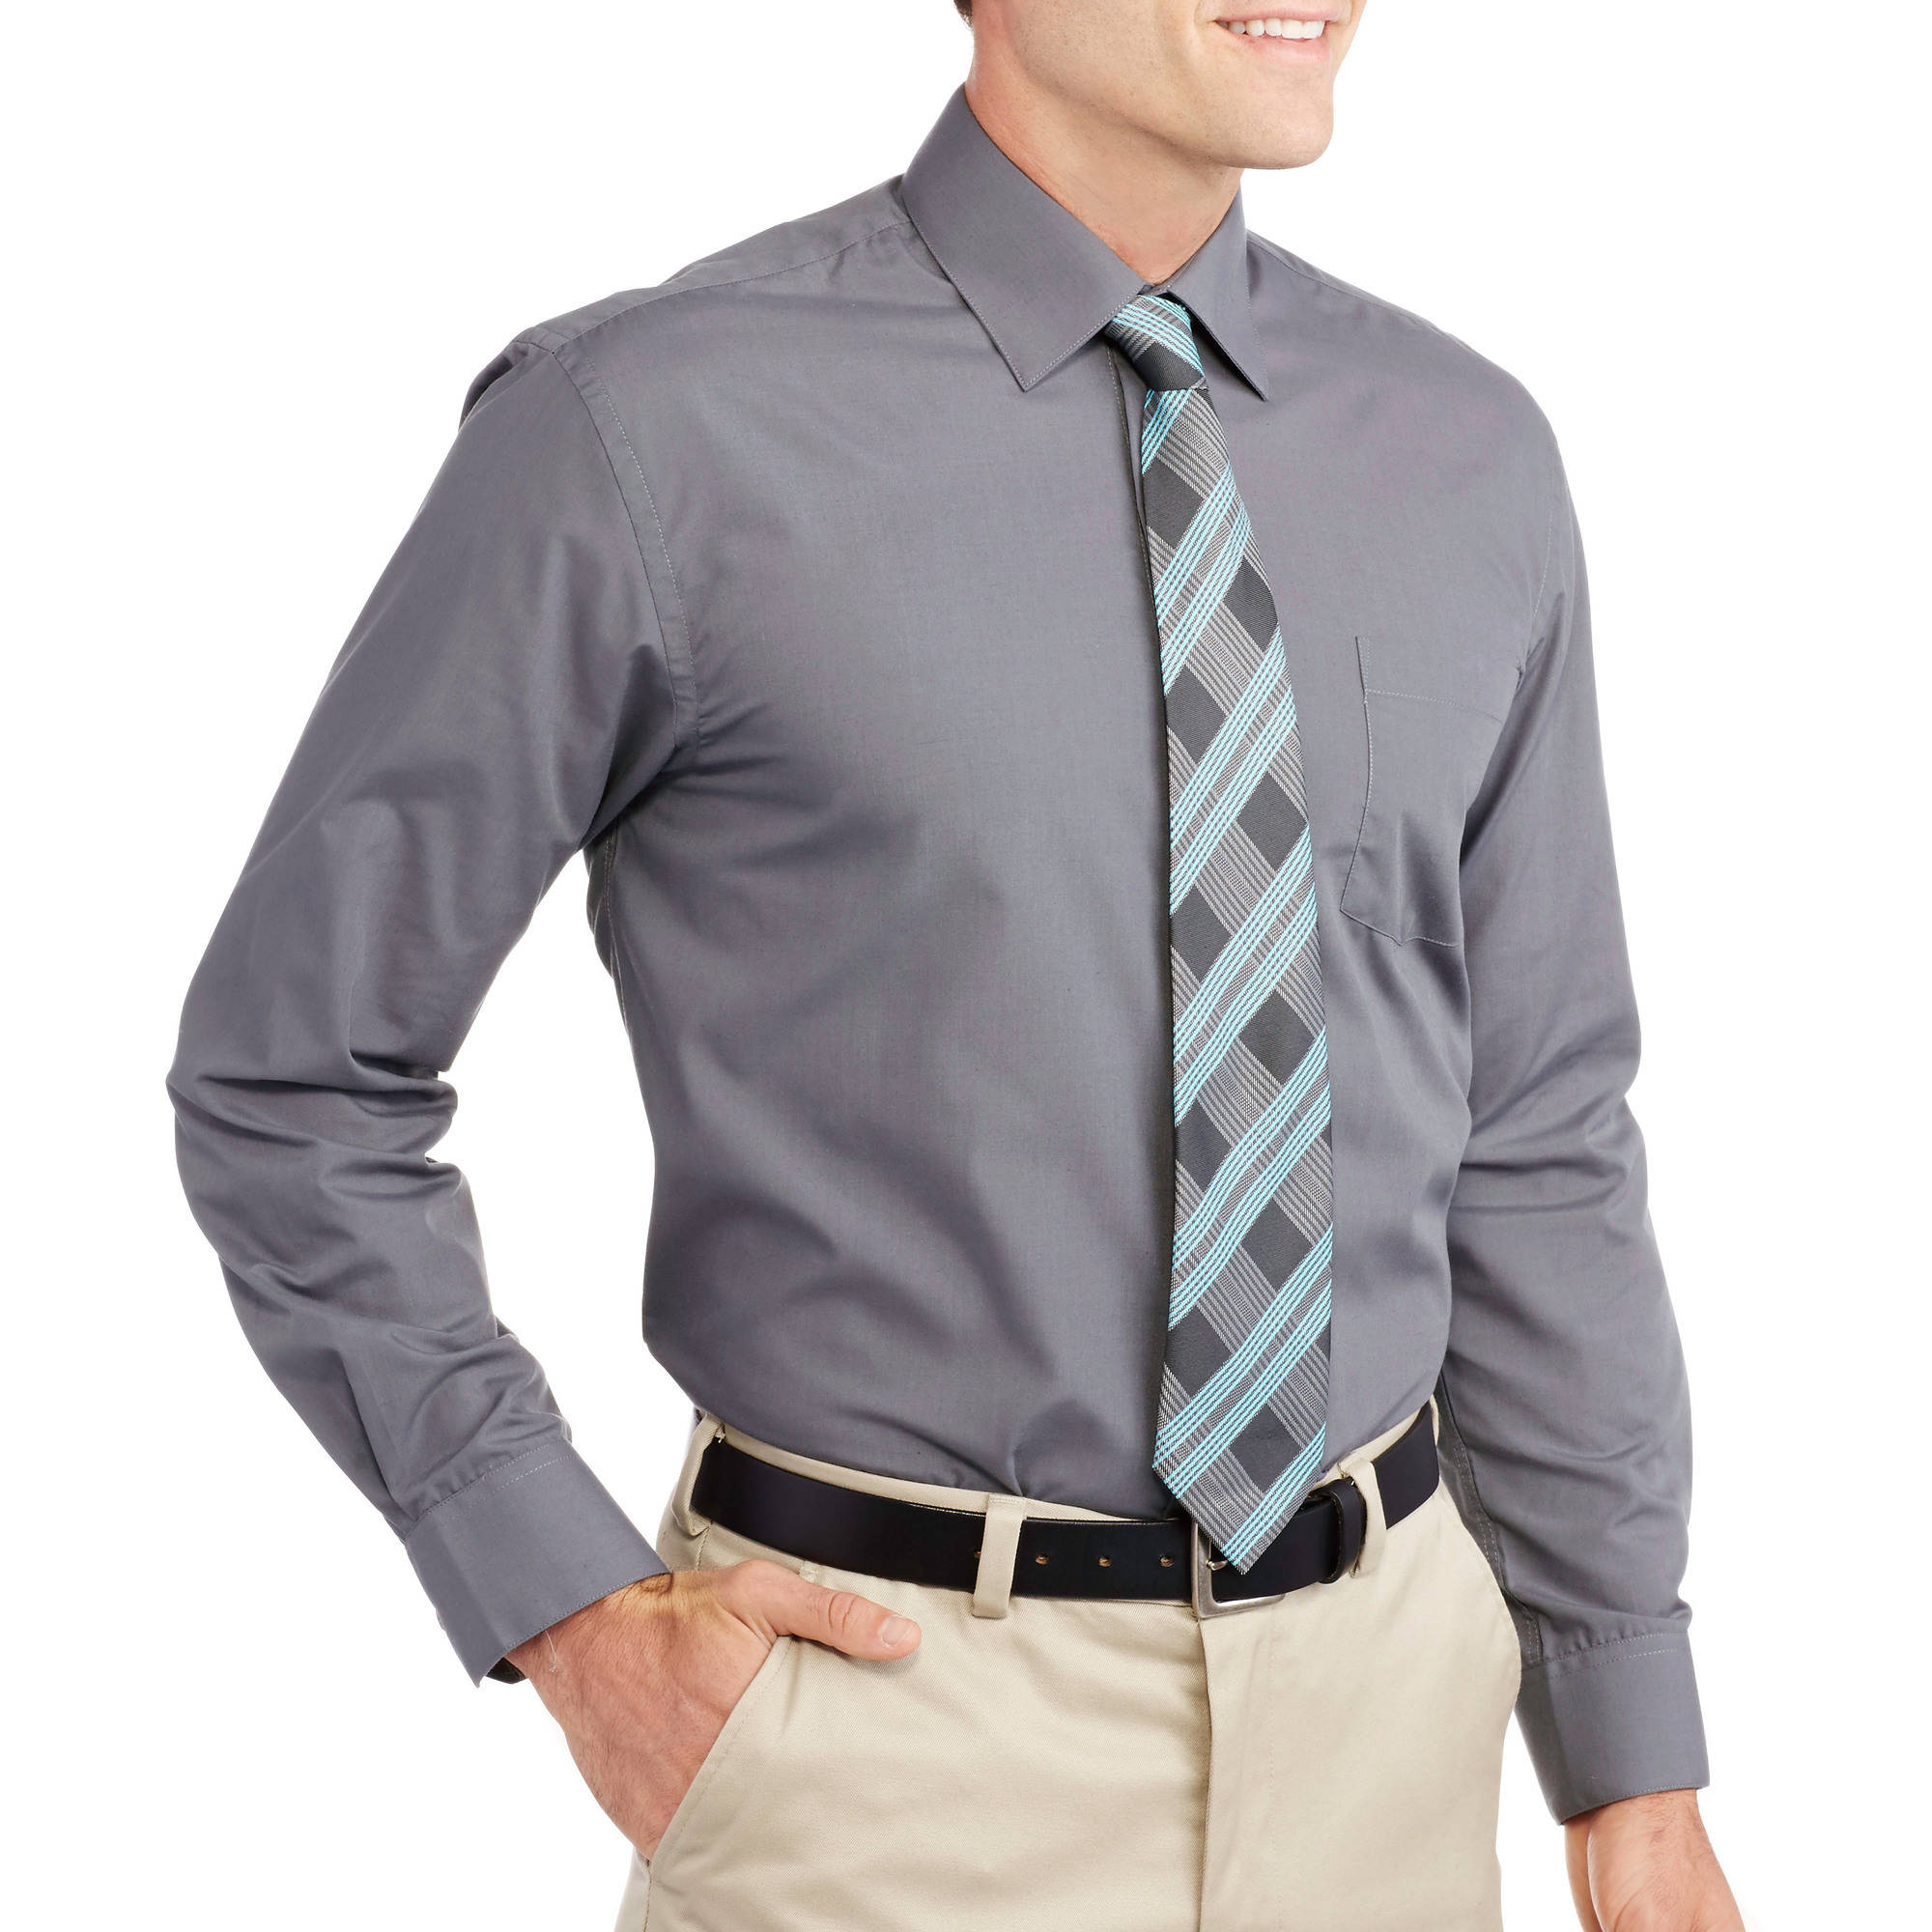 Mens Solid Dress Shirt With Matching Tie Walmart